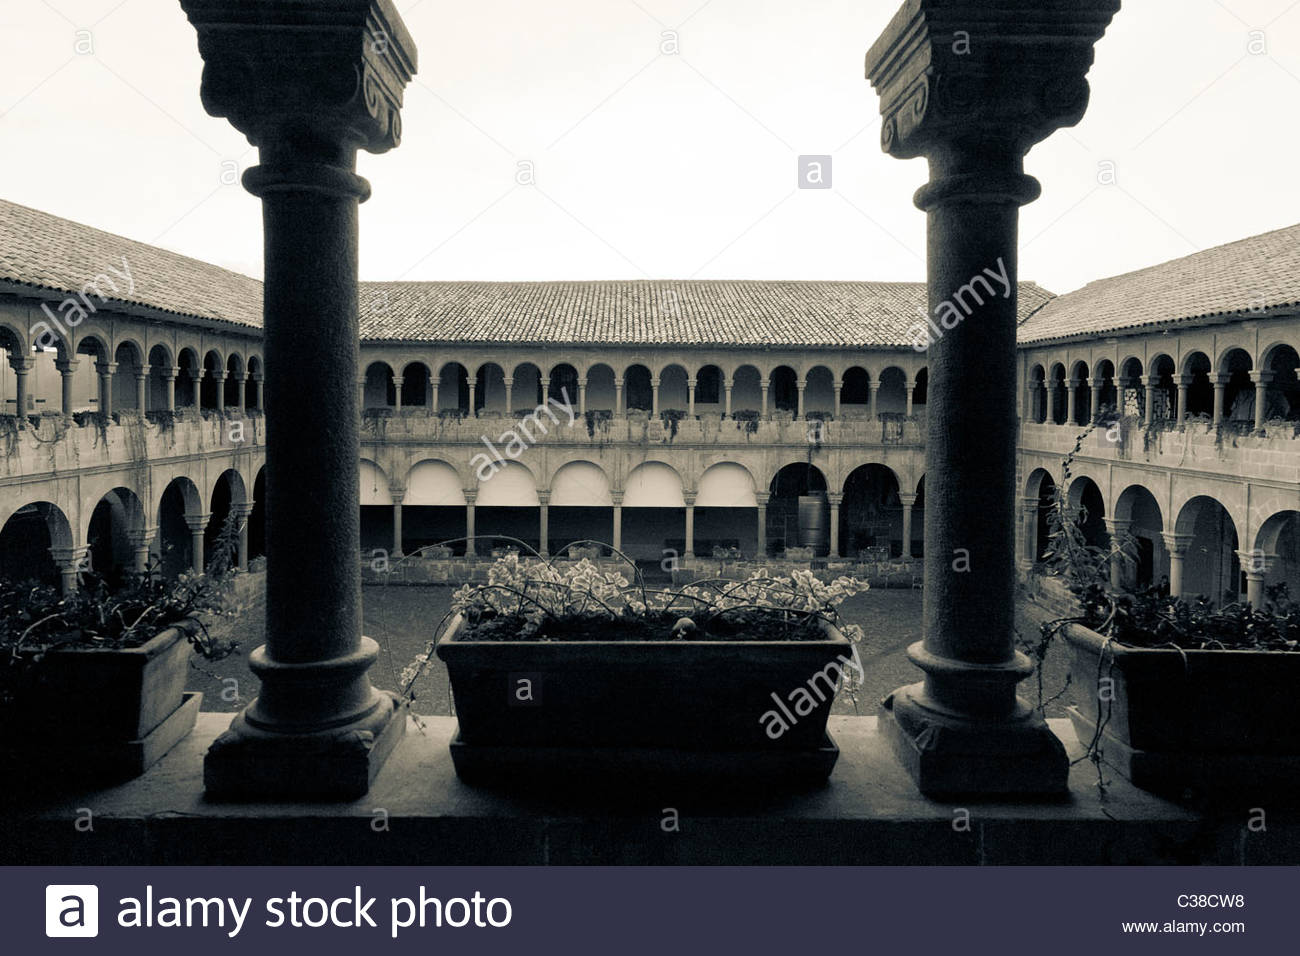 Courtyard of Church of Santo Domingo at Coricancha Temple site, Cuzco, Peru - Stock Image